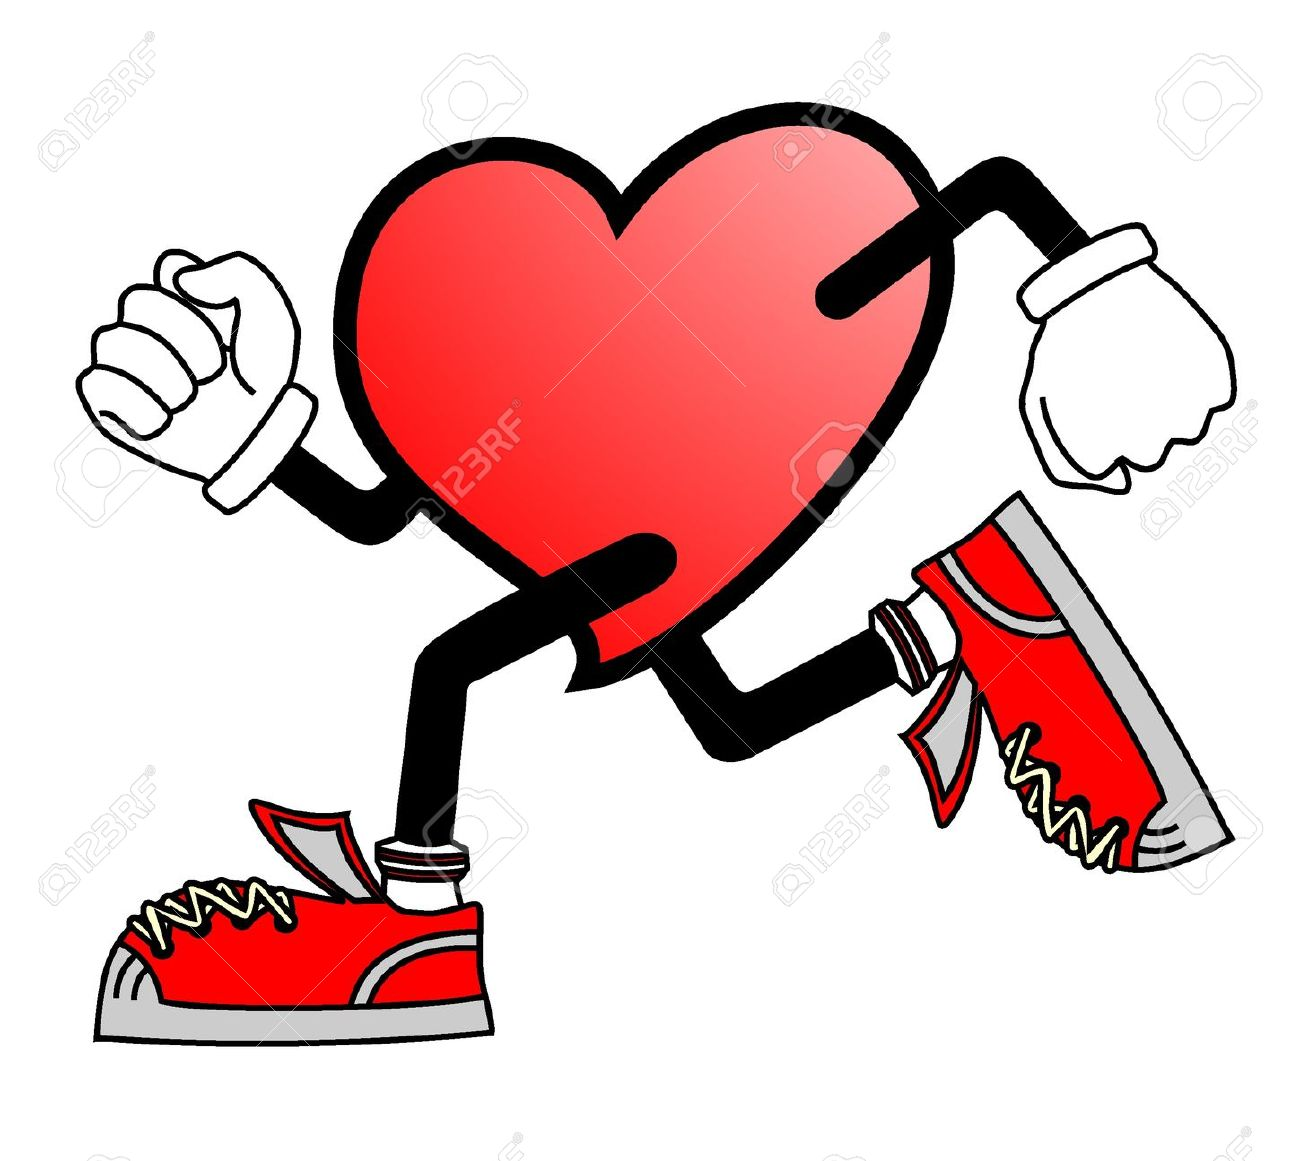 Heart hospital clipart graphic black and white Healthy Heart Clipart   Free download best Healthy Heart ... graphic black and white